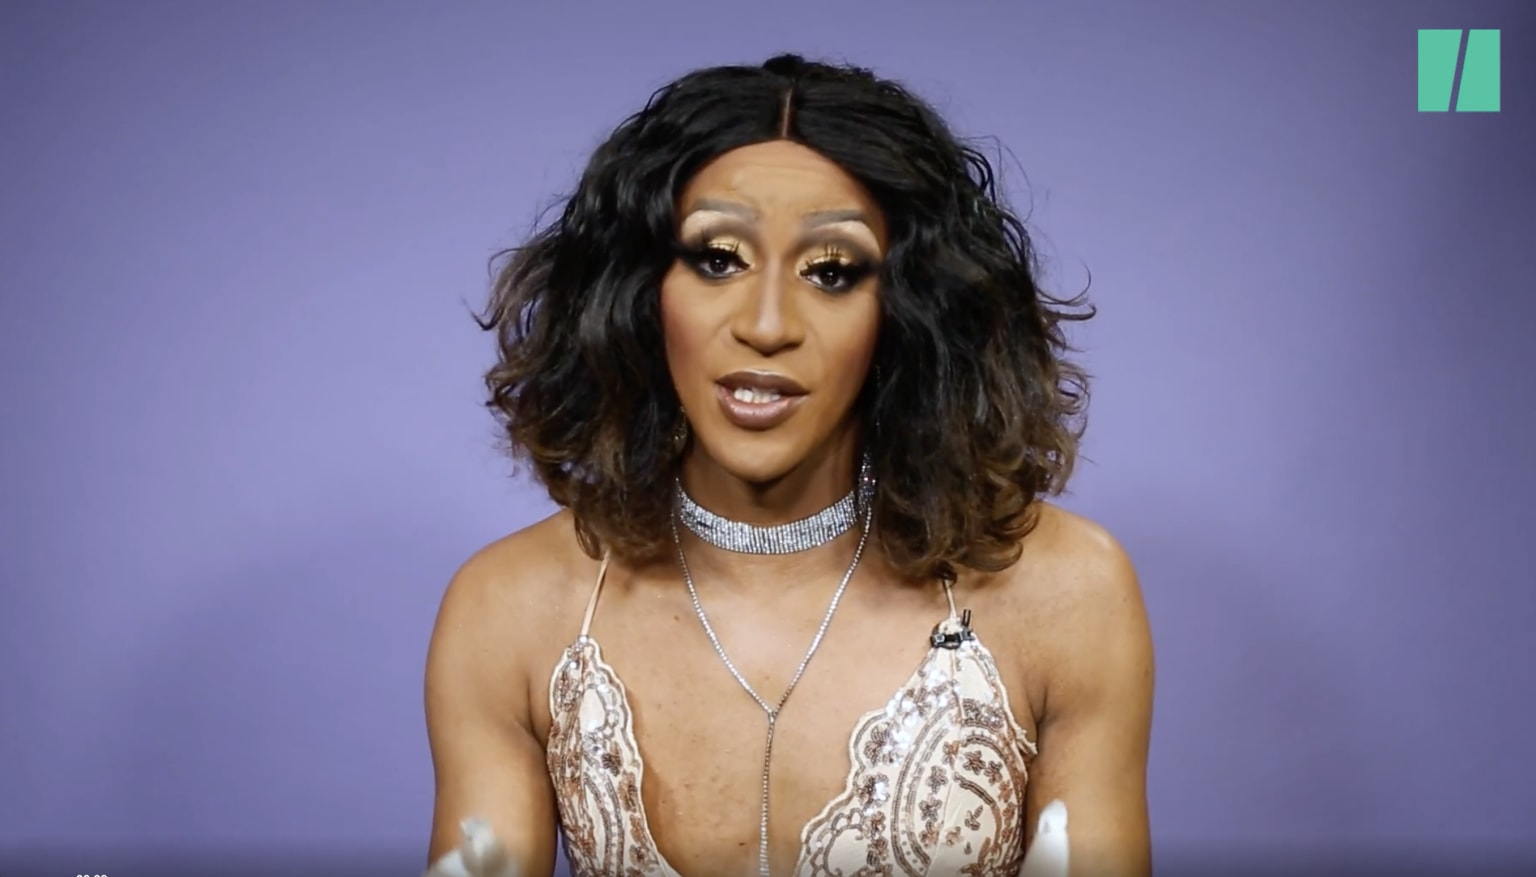 How To Succeed At Drag, As Told By Drag Queen Tynomi Banks